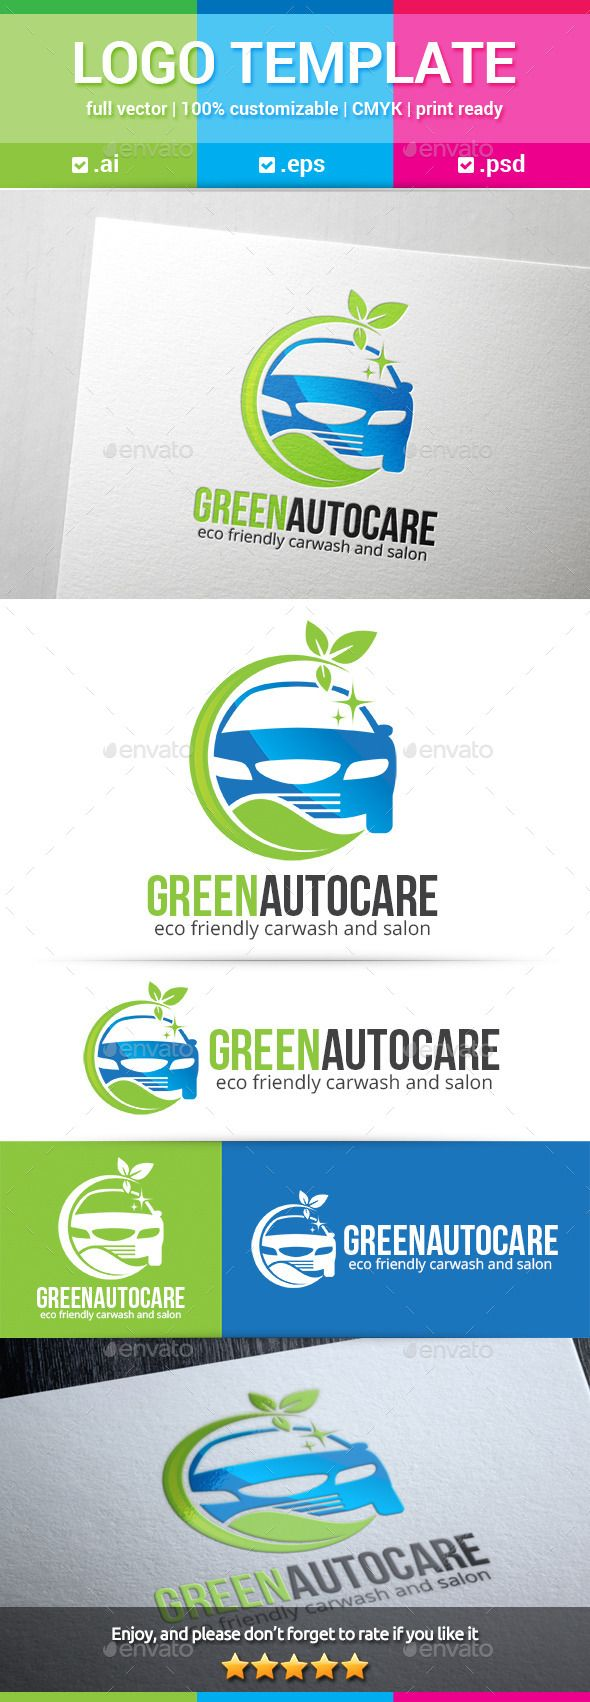 Buy green auto care logo by on graphicriver green auto care logo is a car with green leaves around it suited for eco friendly car wash or car cleaning